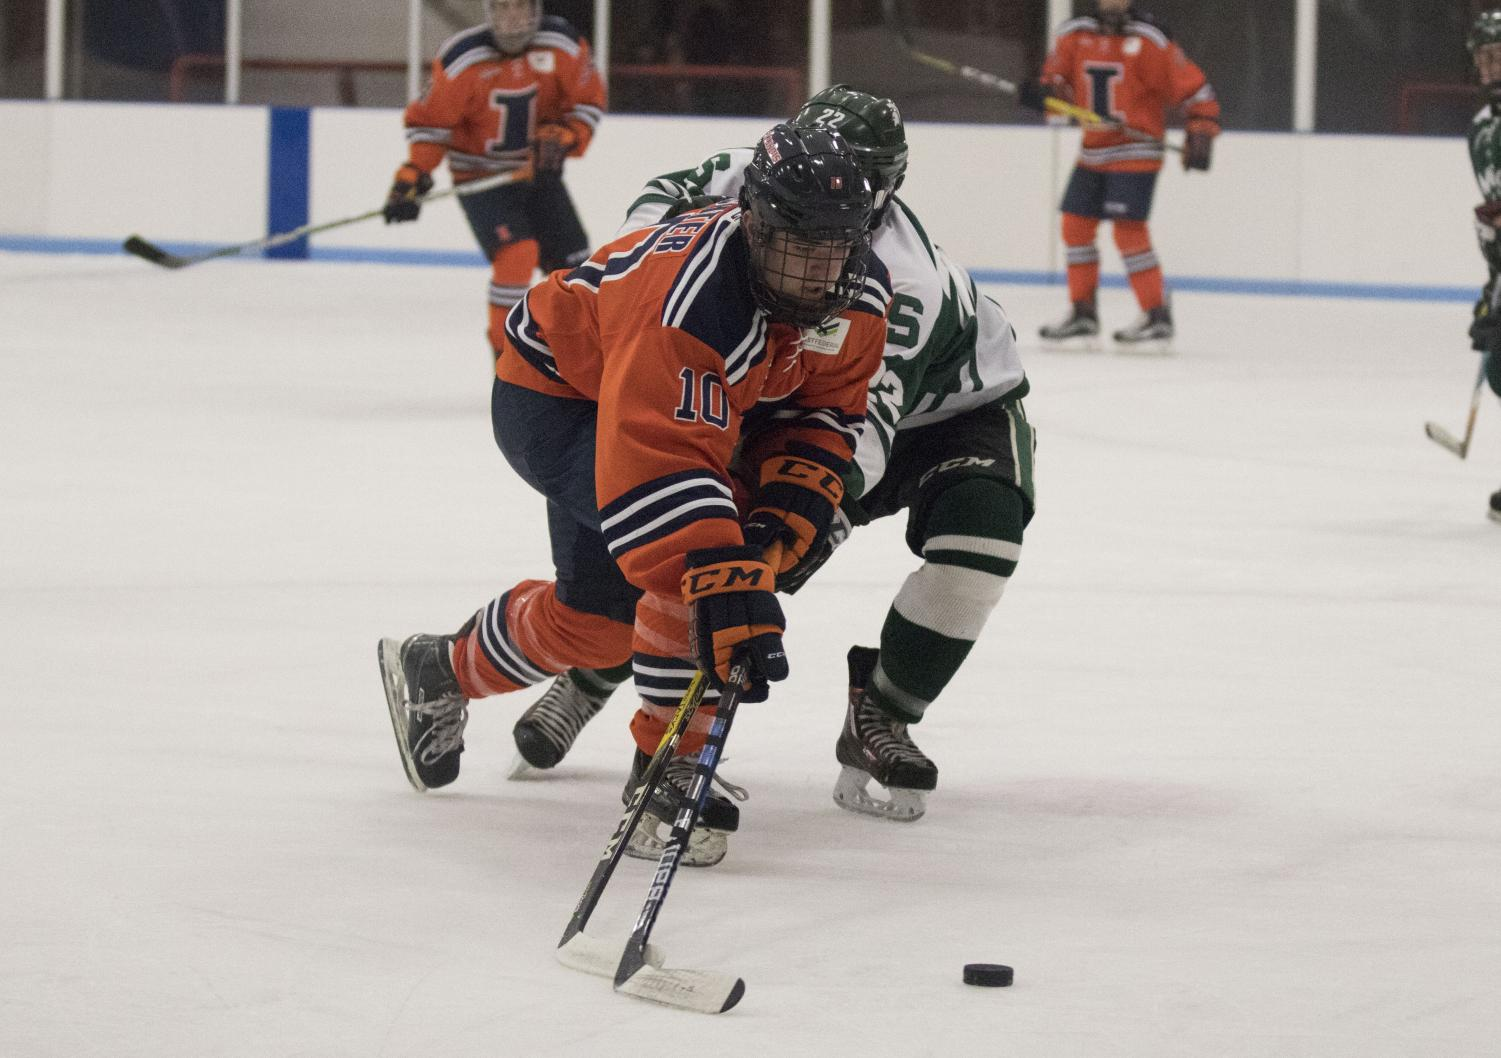 Drew Richter (10) fights off a Michigan State opponent to take the puck to the goal at the Ice Arena on Friday, Sept. 22, 2017. Illini beat MSU 4-1.